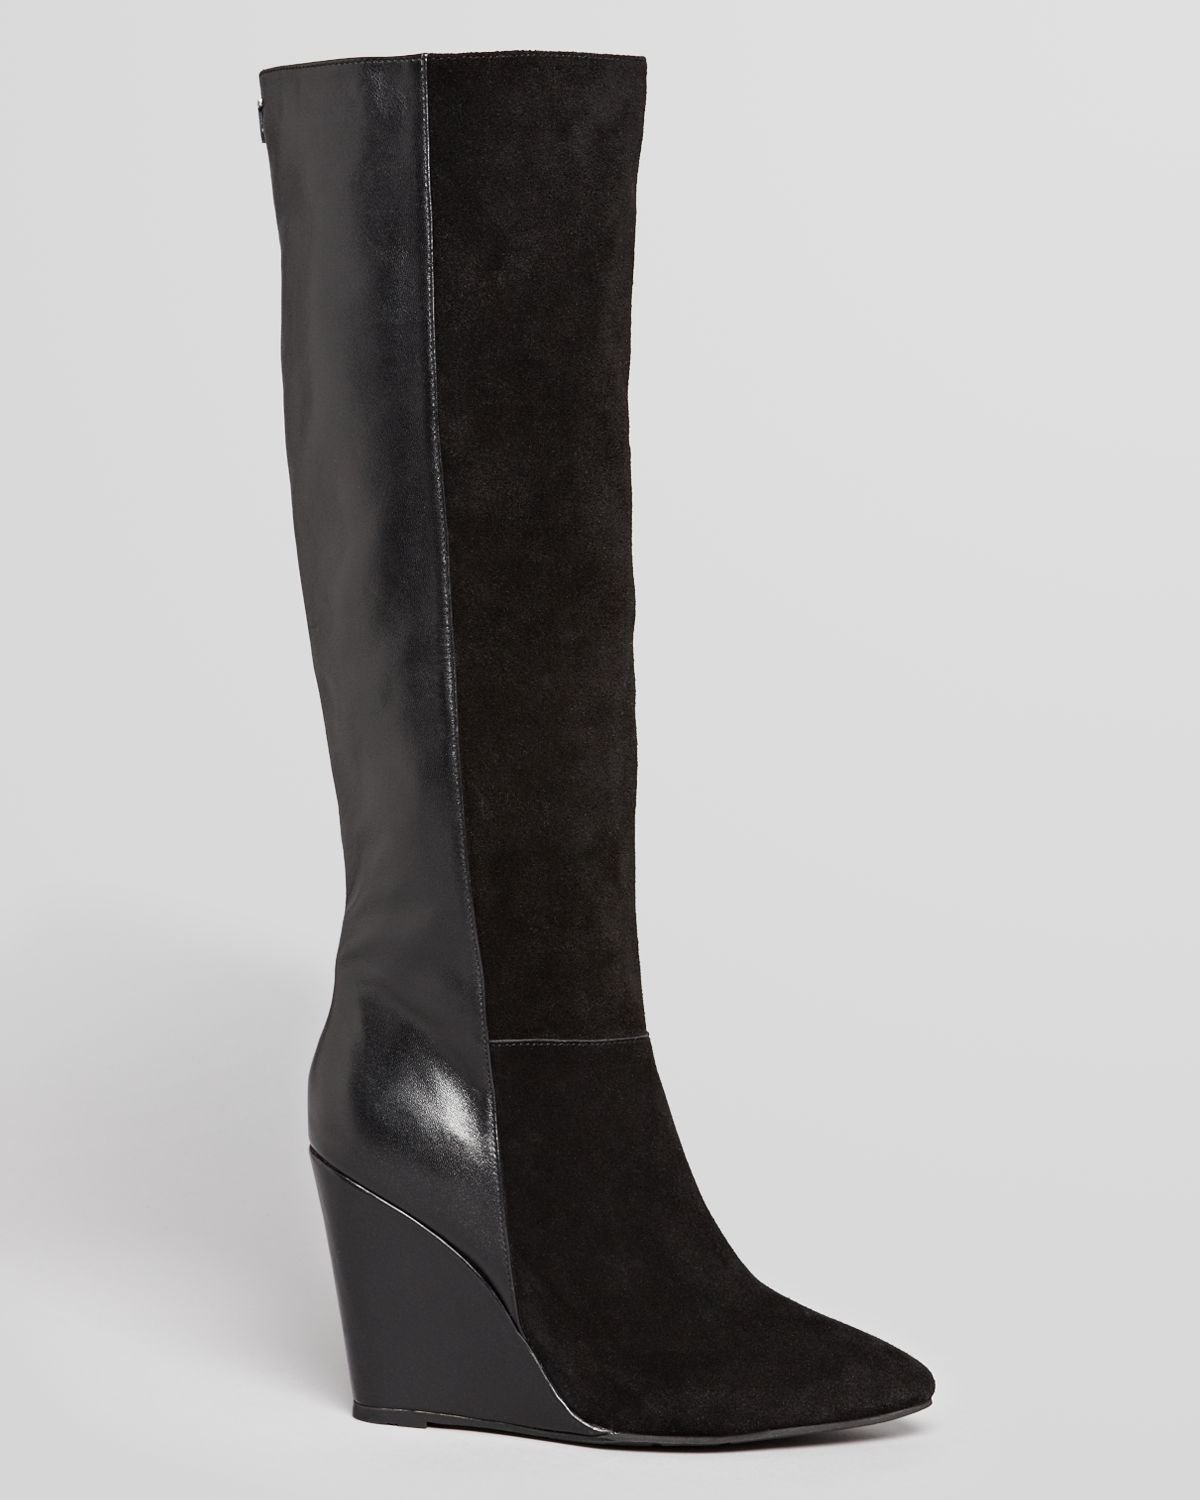 Lyst Ted Baker Tall Wedge Dress Boots Resen In Black